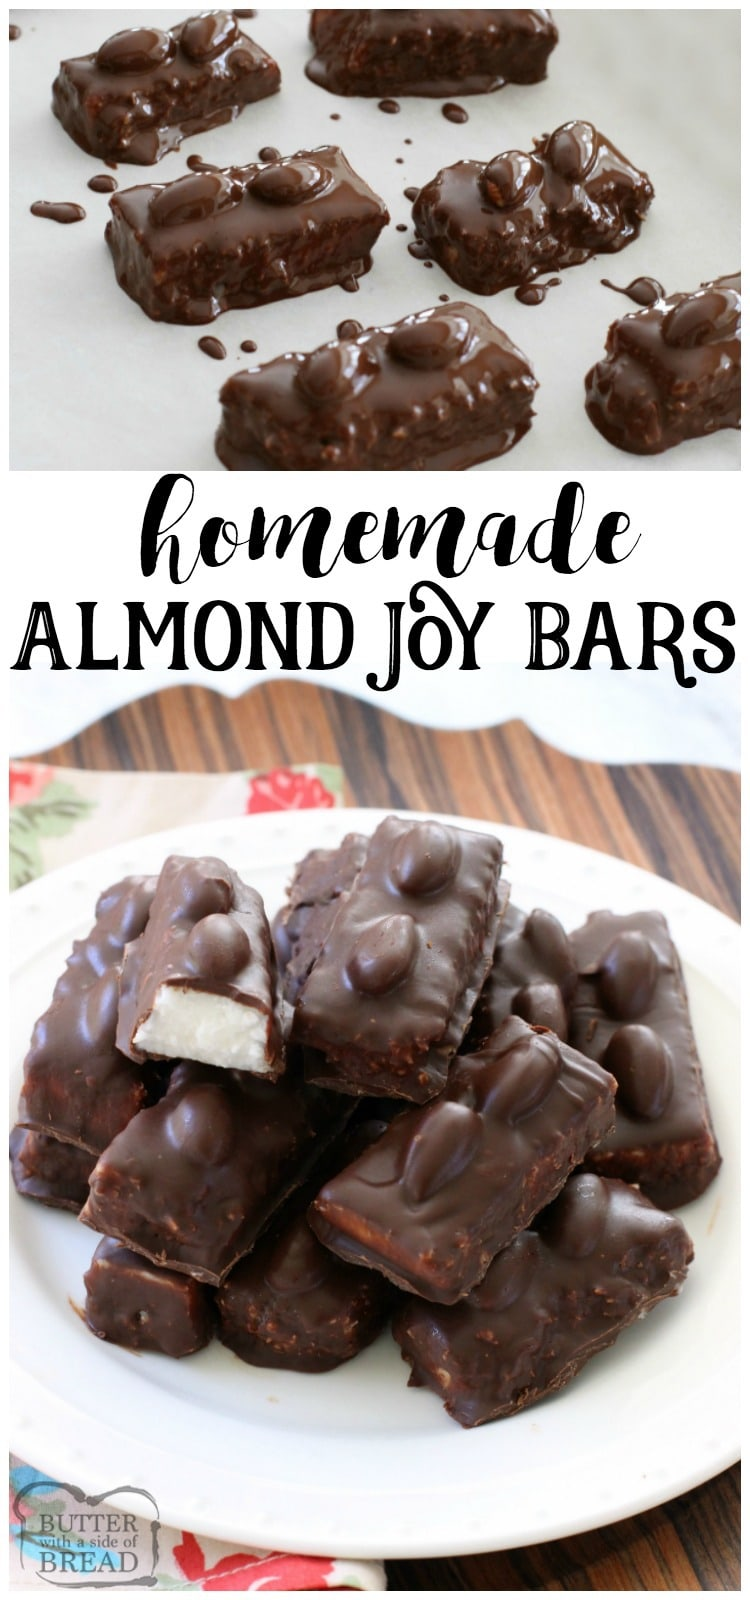 Homemade Almond Joy Bars - Butter With A Side of Bread